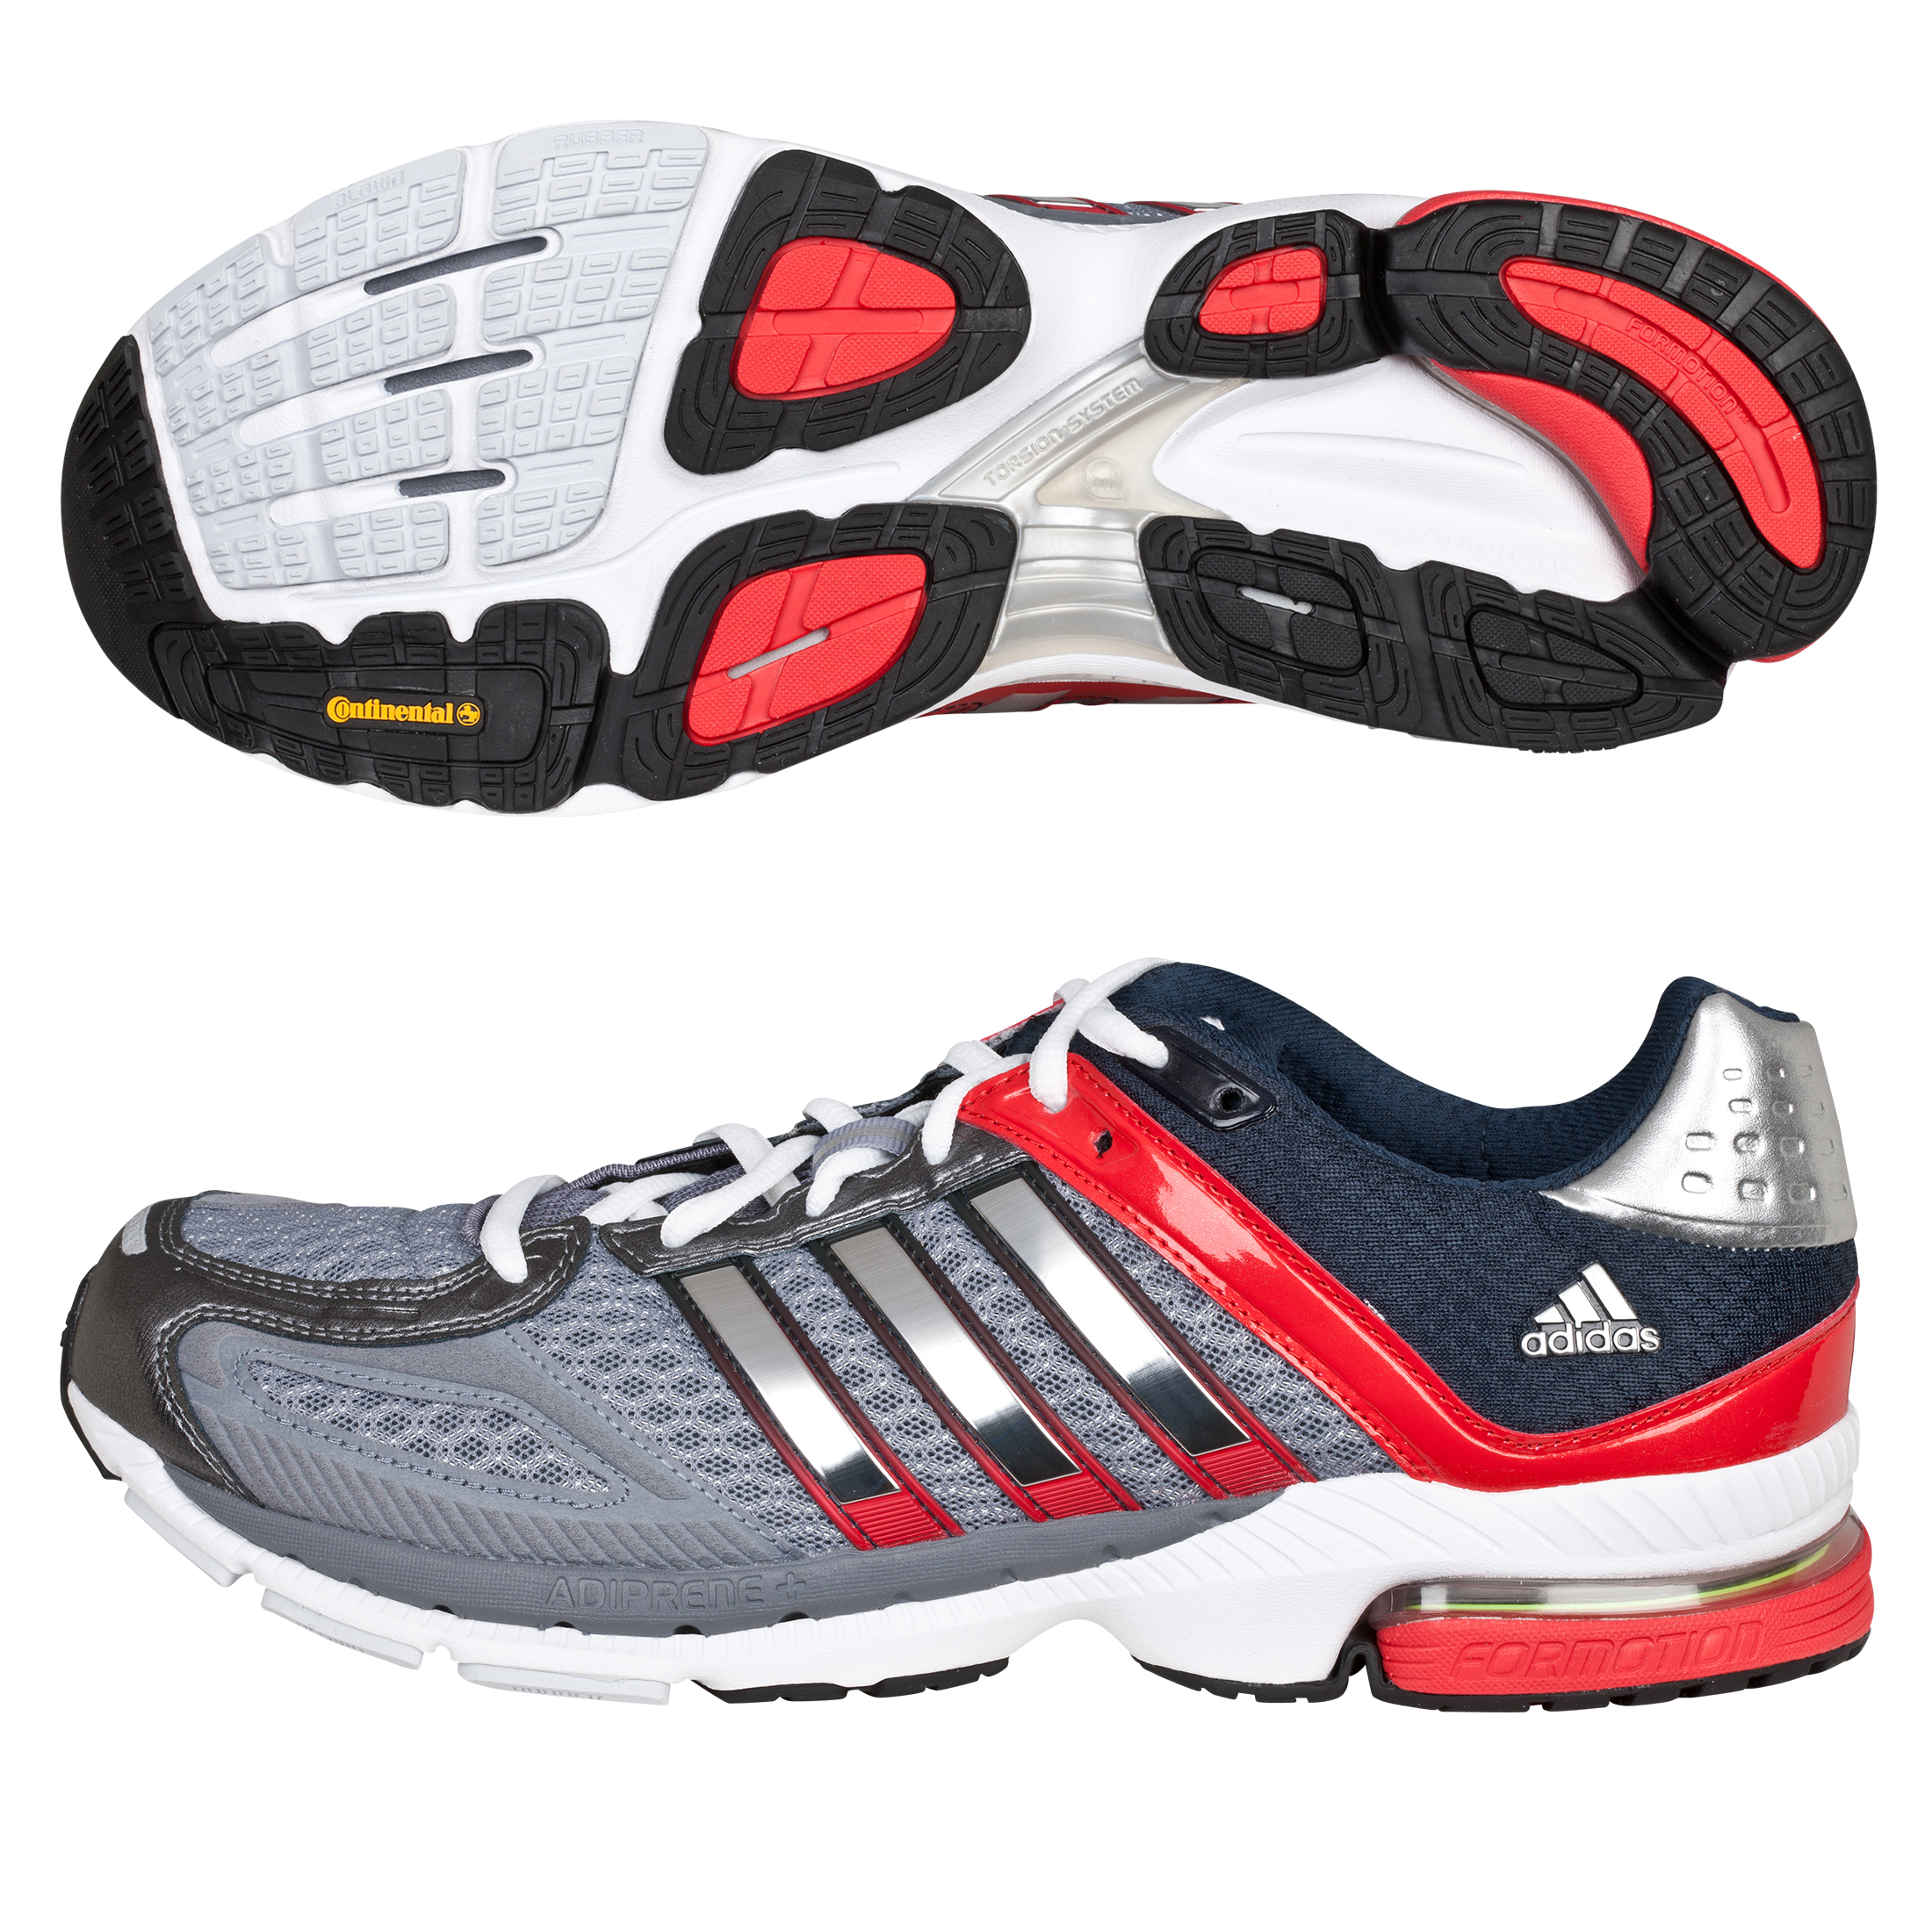 Adidas Snova Seq 5 Running Trainers - Grey/Metallic Silver/Red